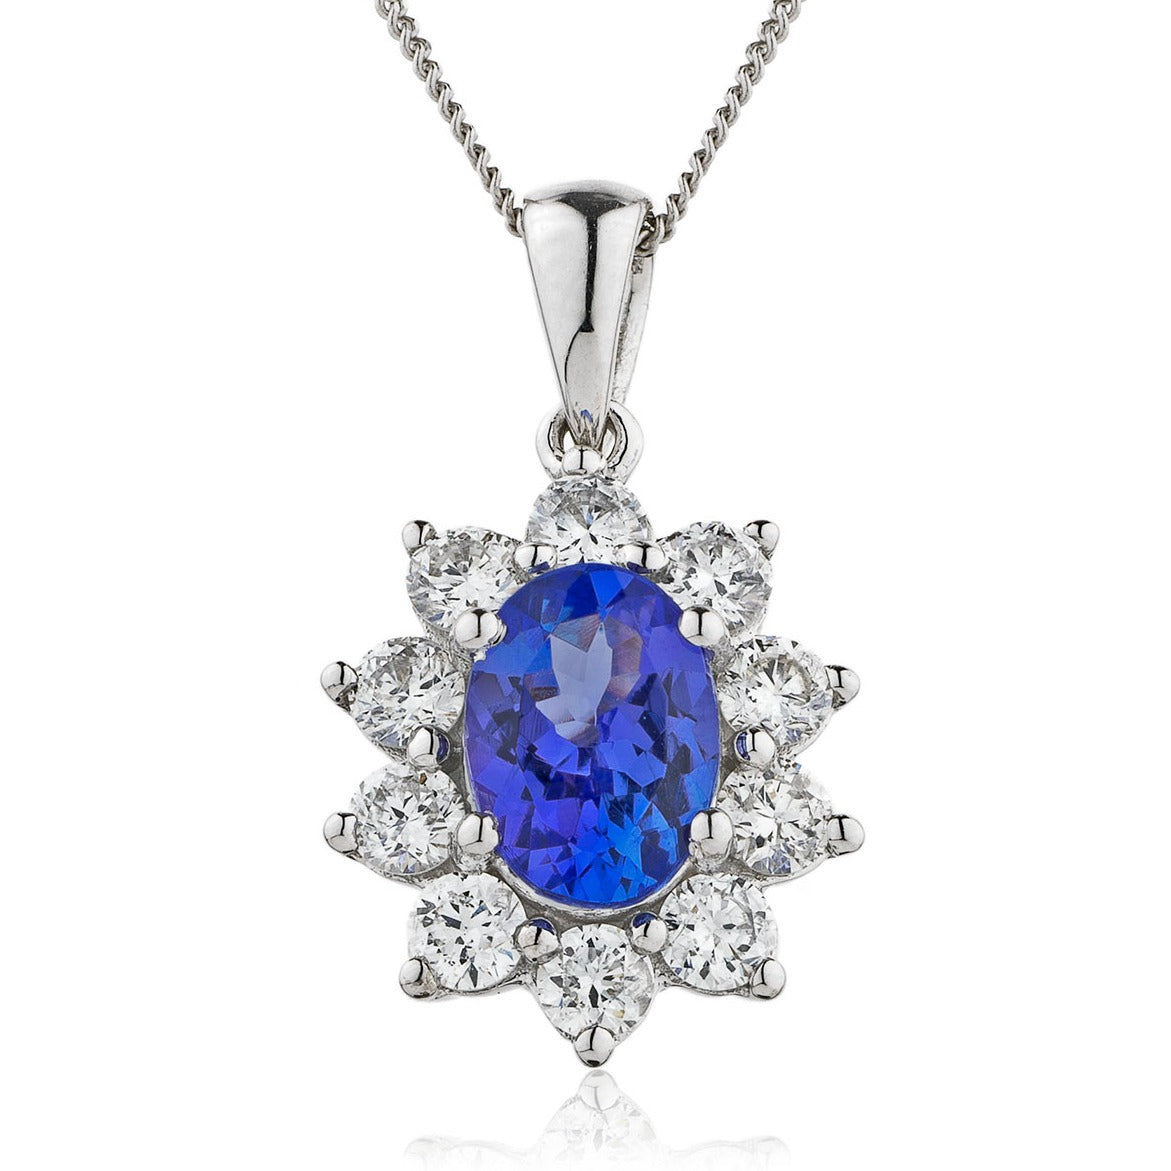 18ct White Gold Blue Sapphire and Diamond Pendant & Chain